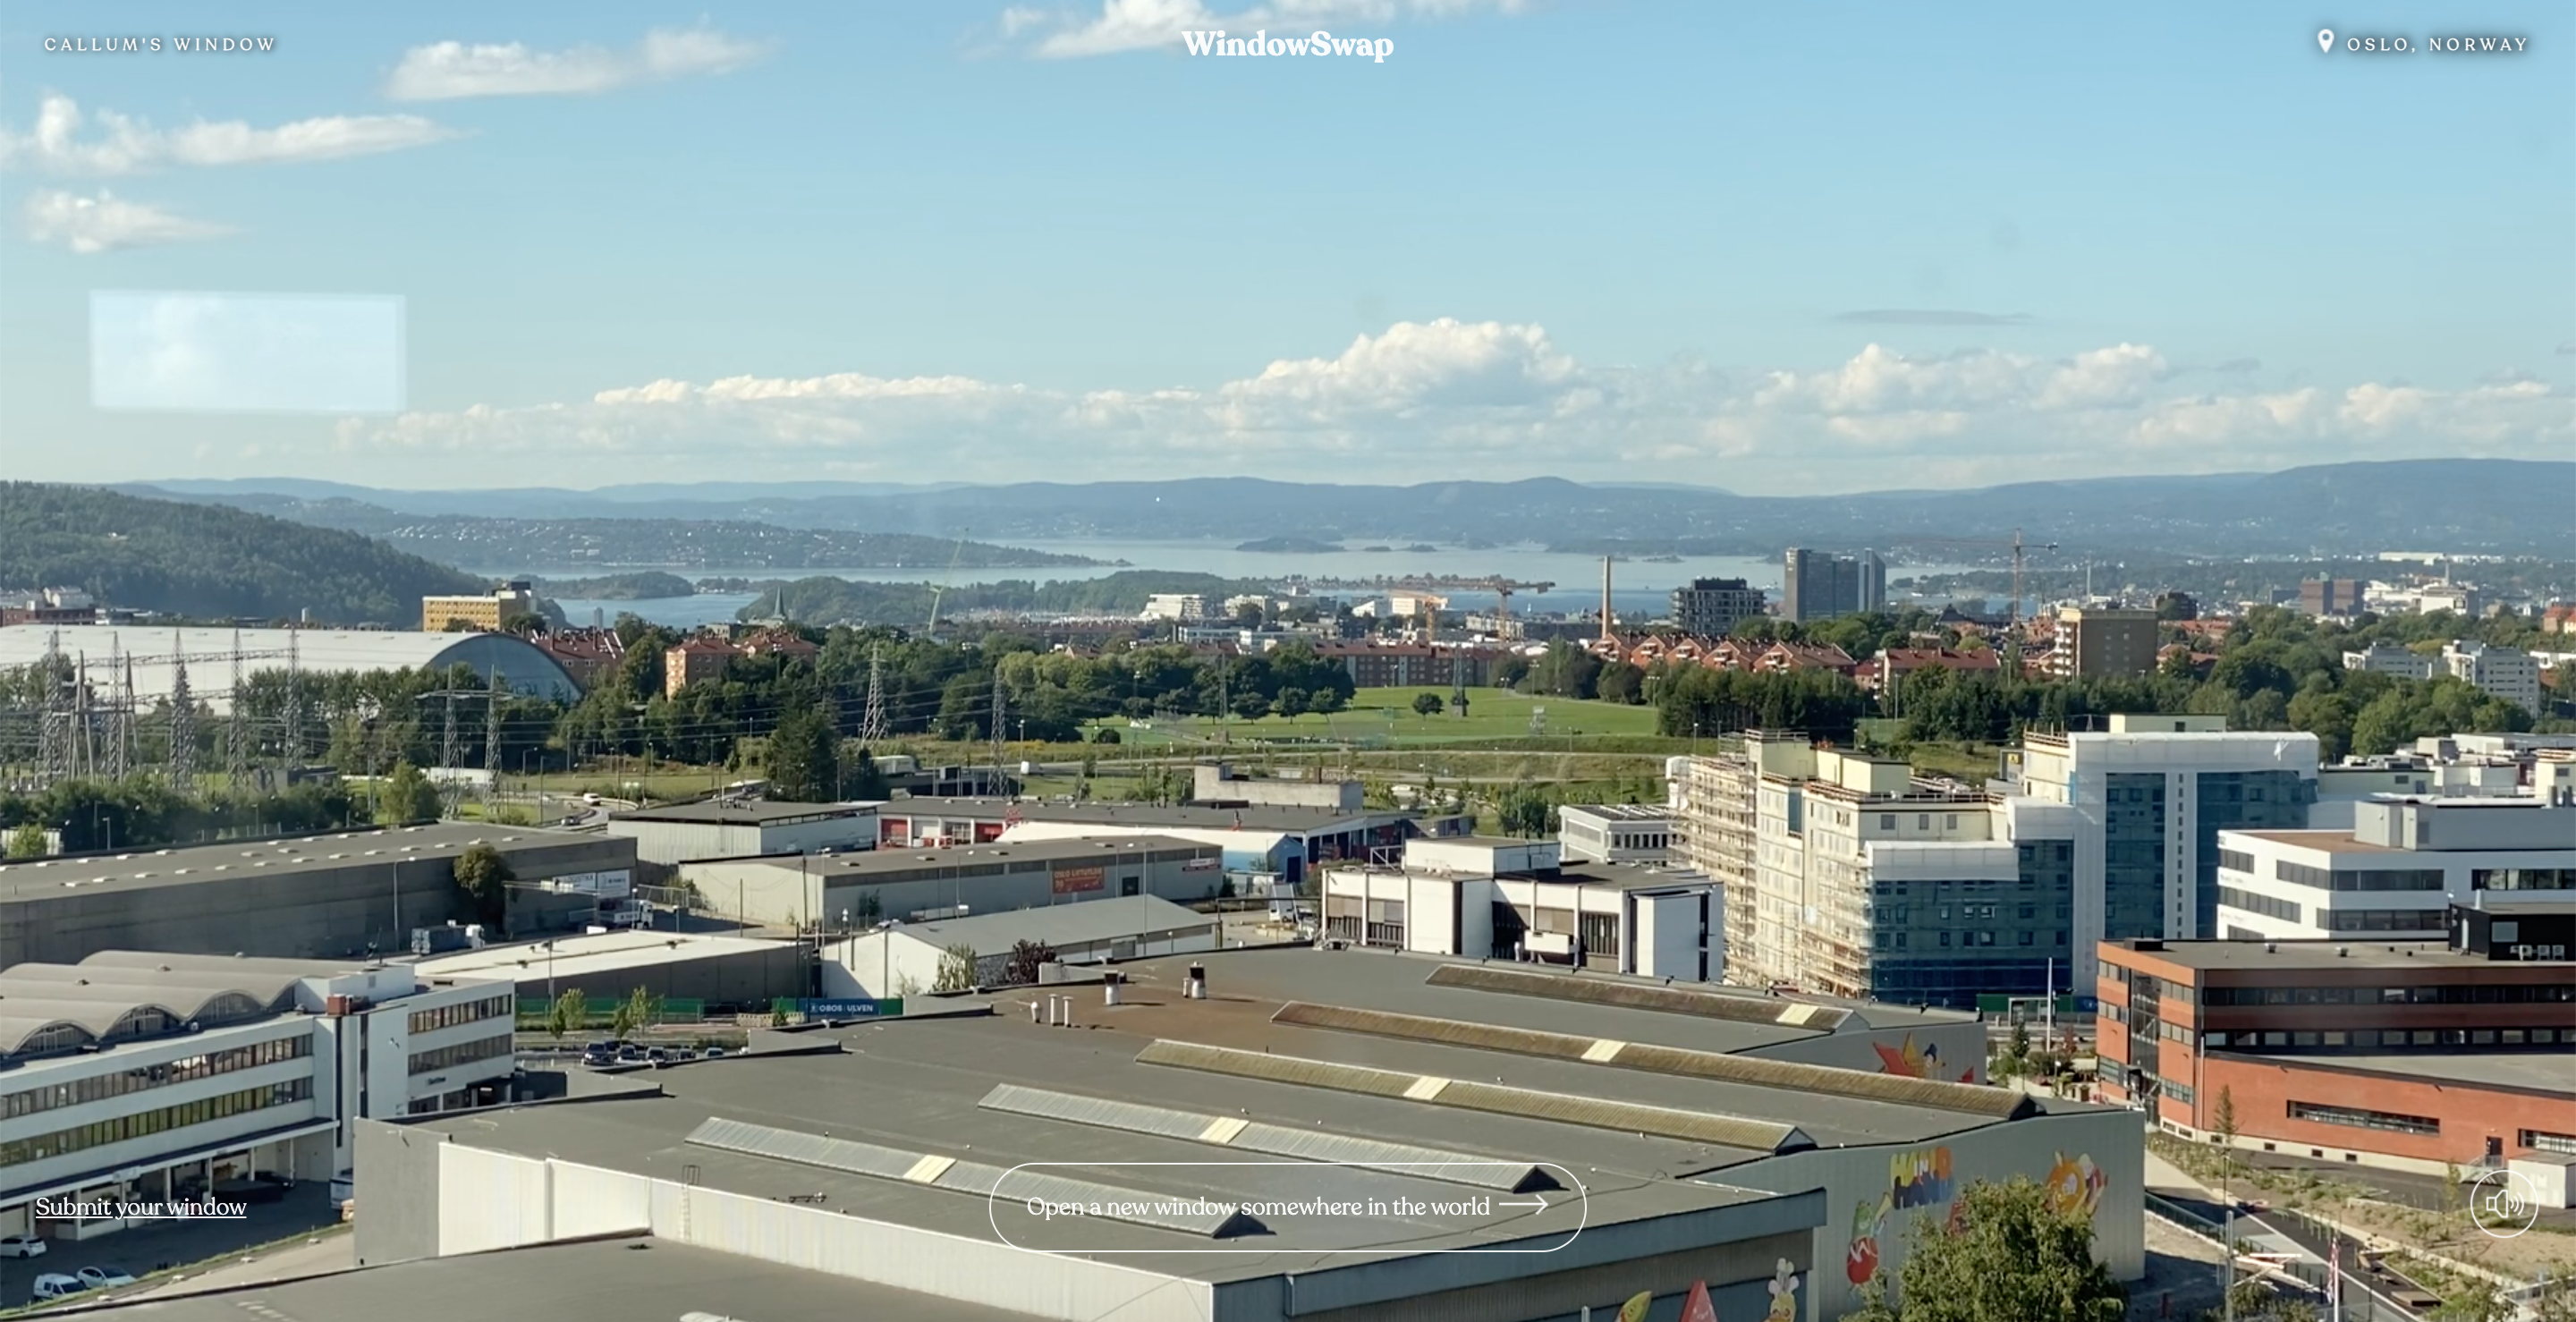 A window view in Oslo, Norway